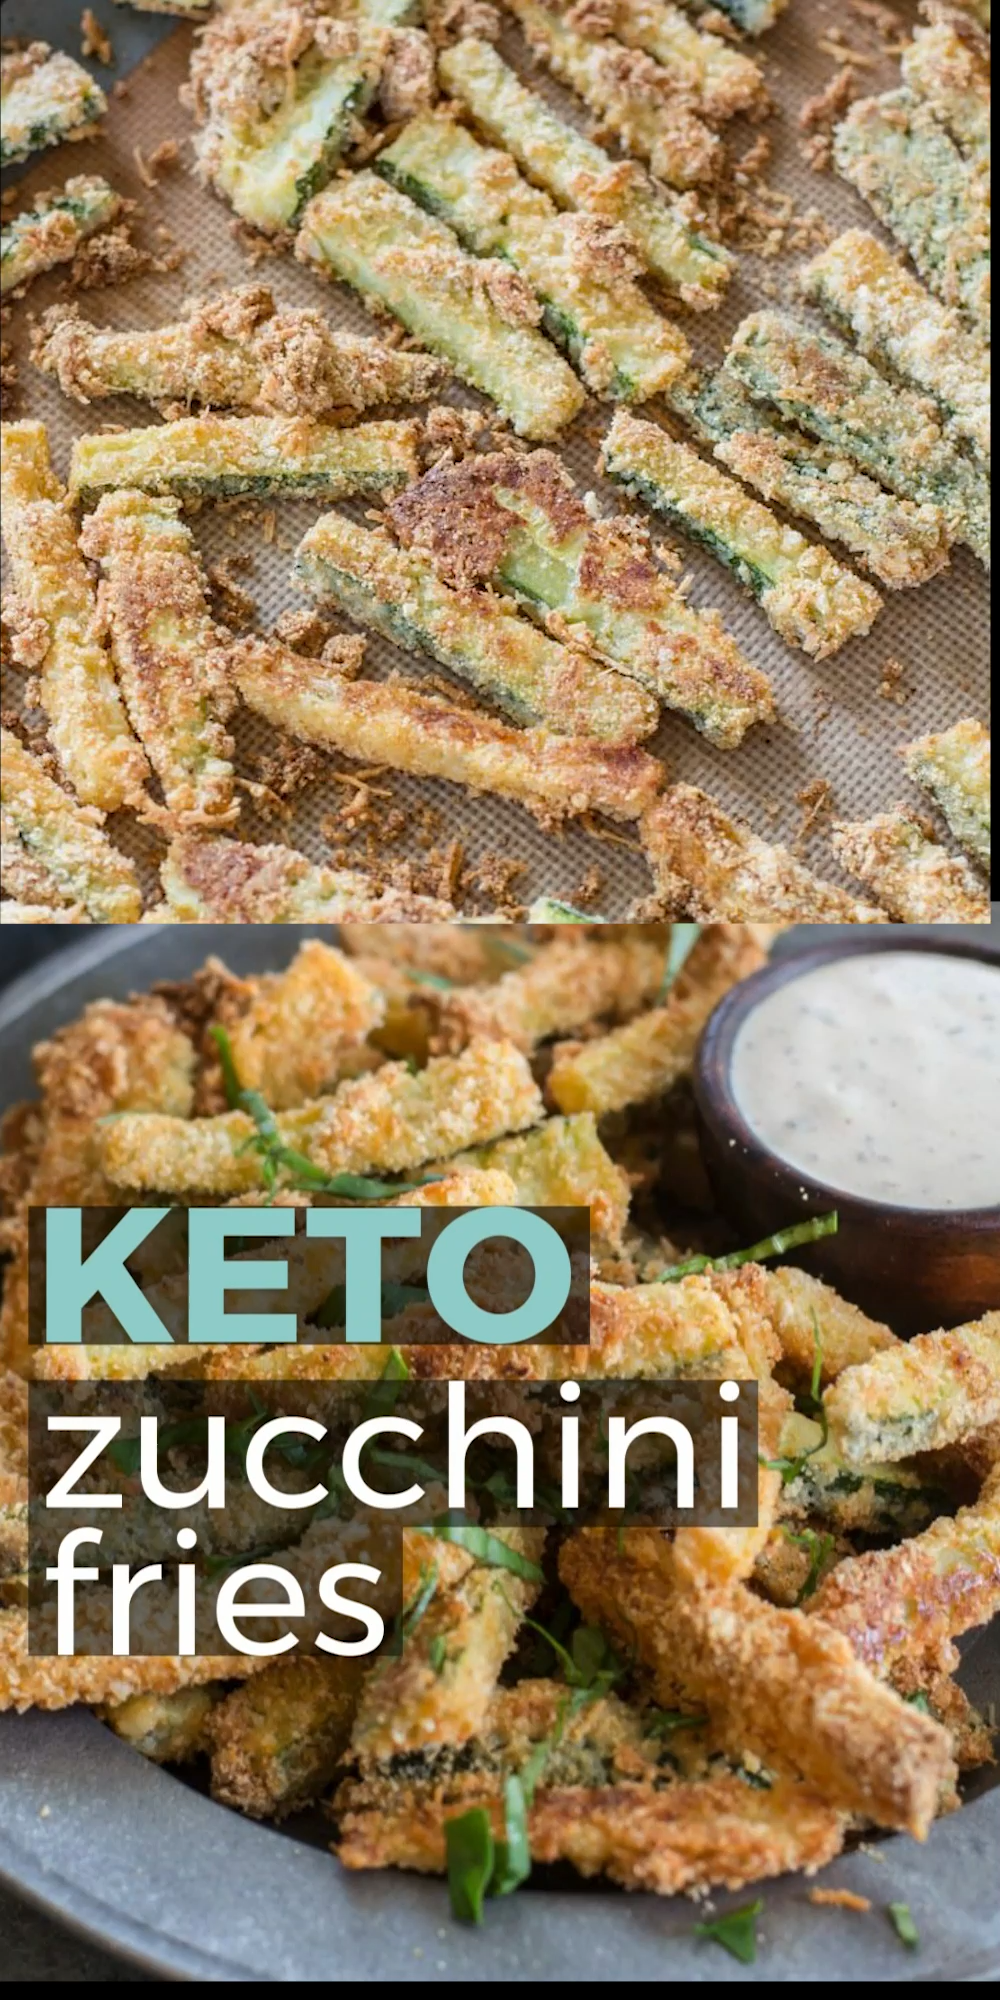 Photo of Keto-Zucchini-Pommes (3 Netto-Kohlenhydrate!)